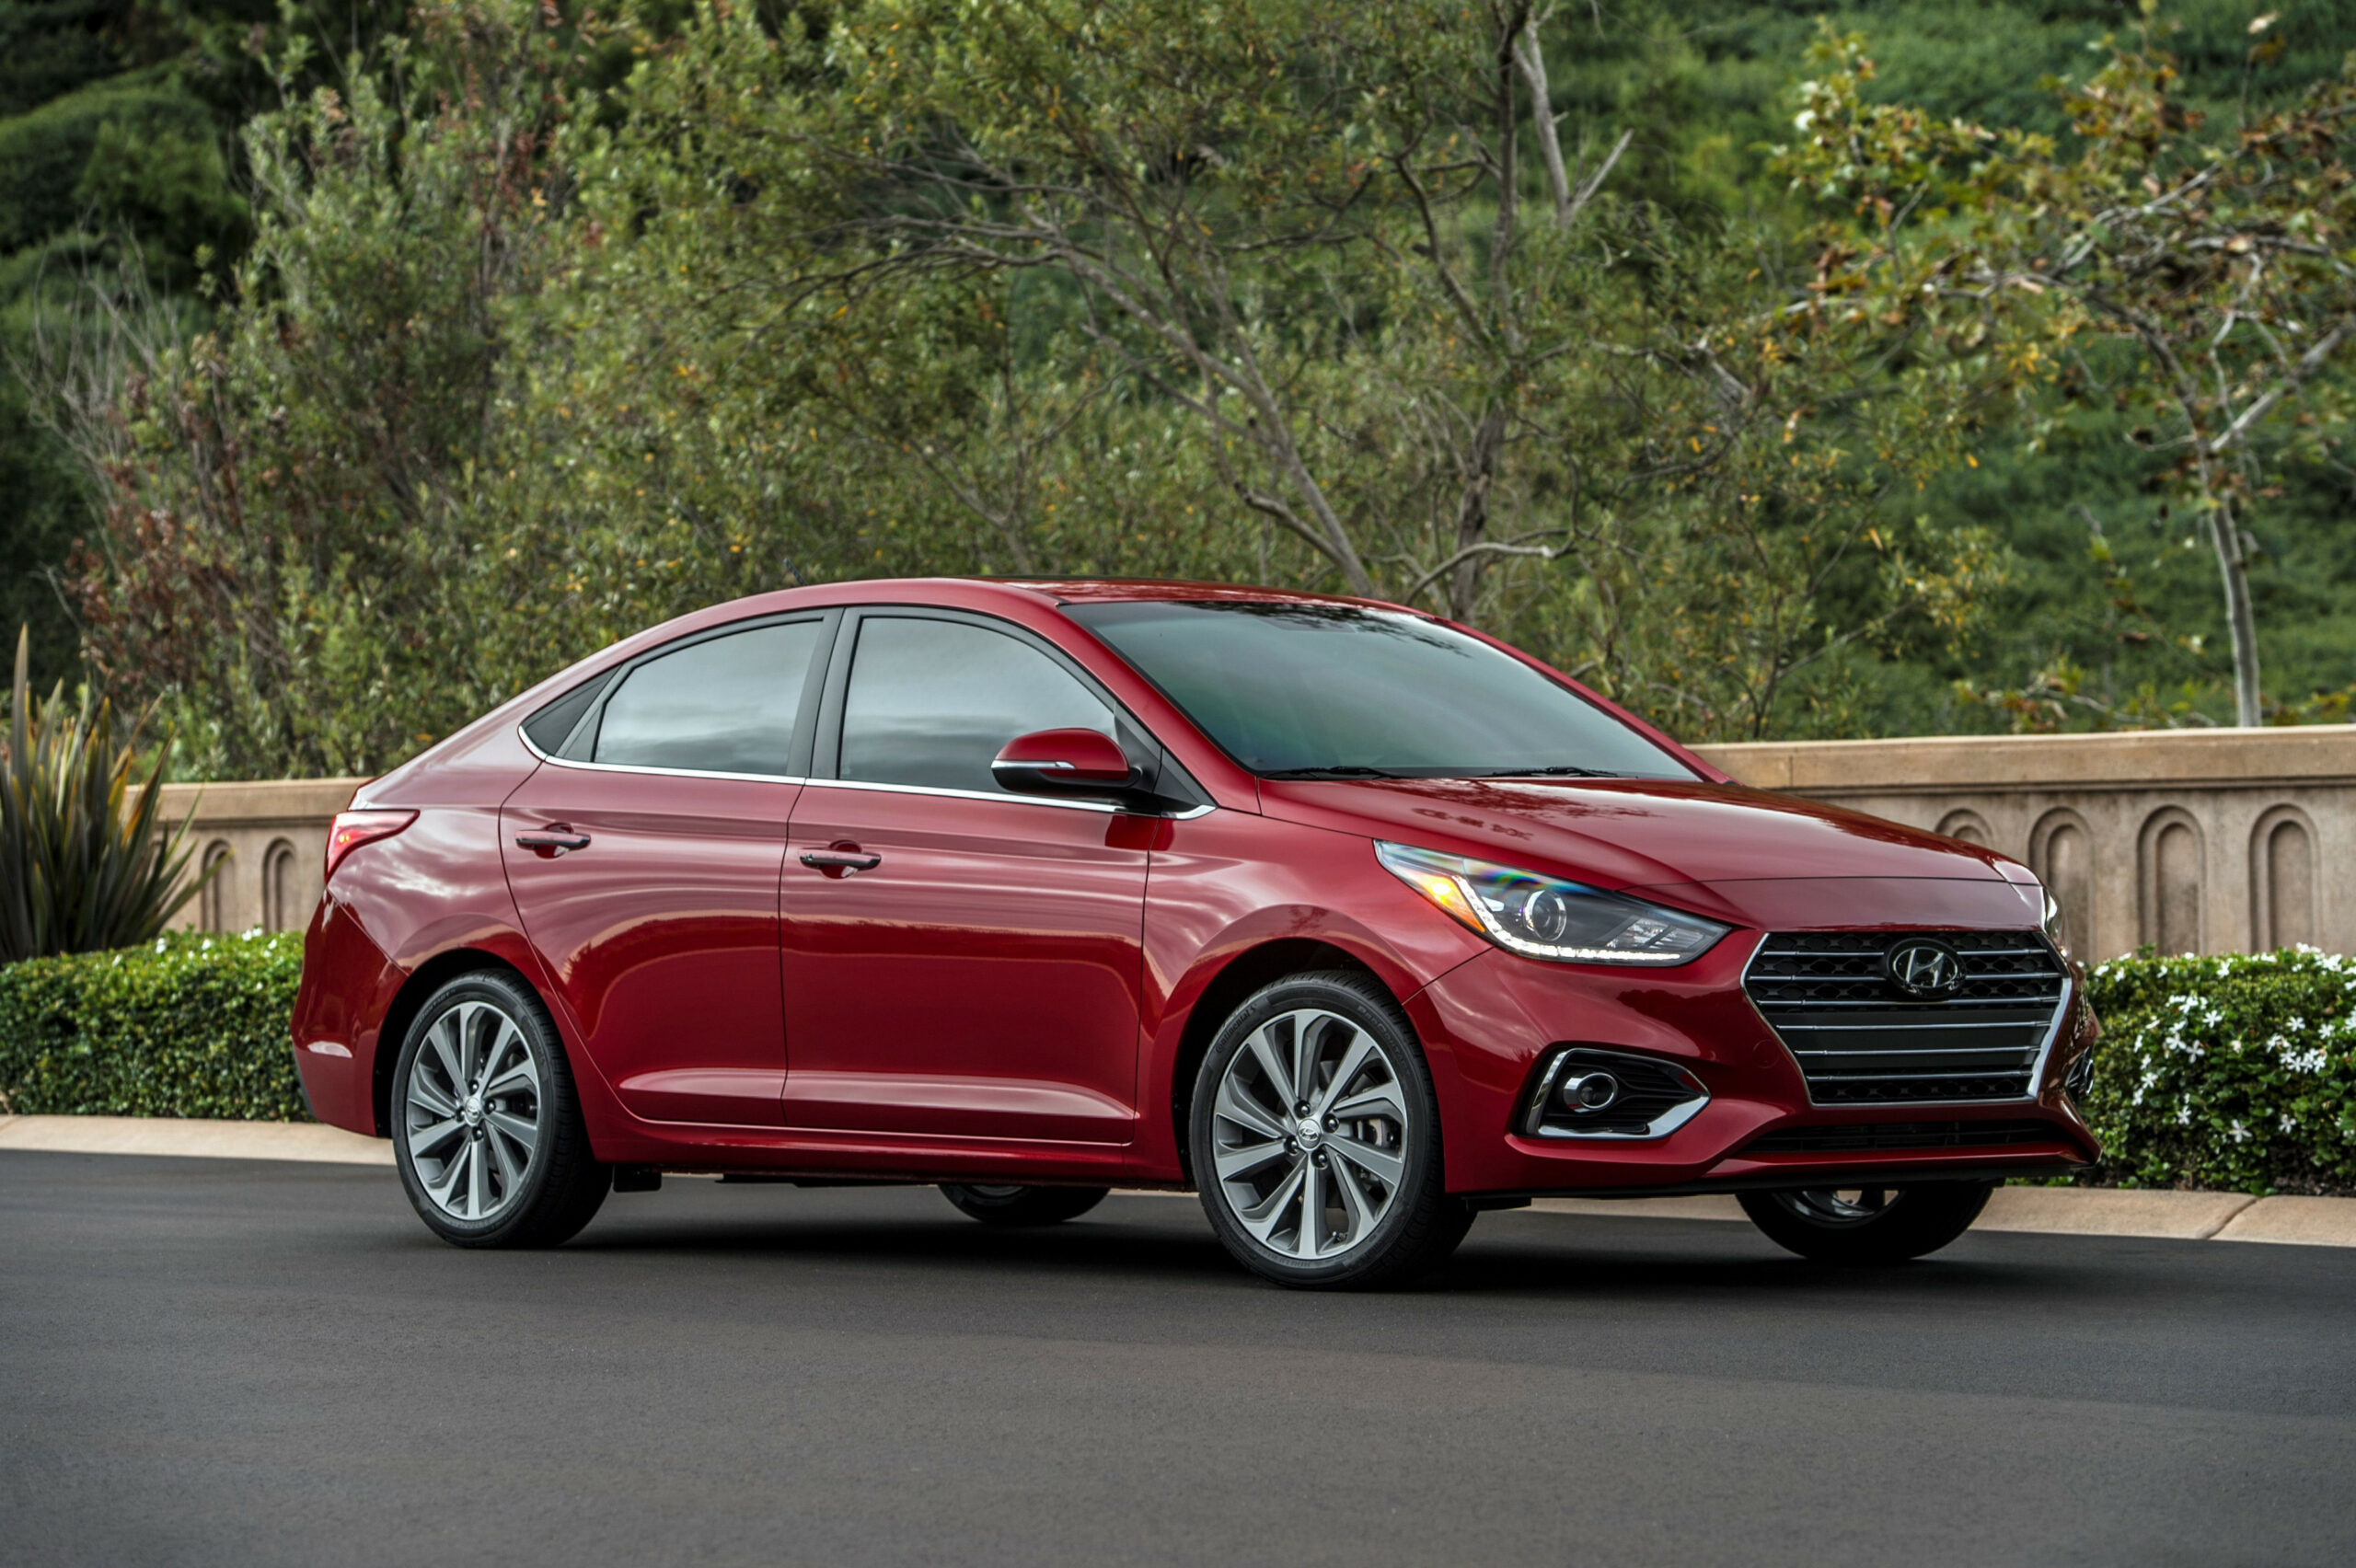 7 Hyundai Accent Review, Pricing, and Specs - hyundai accent 2020 price in india